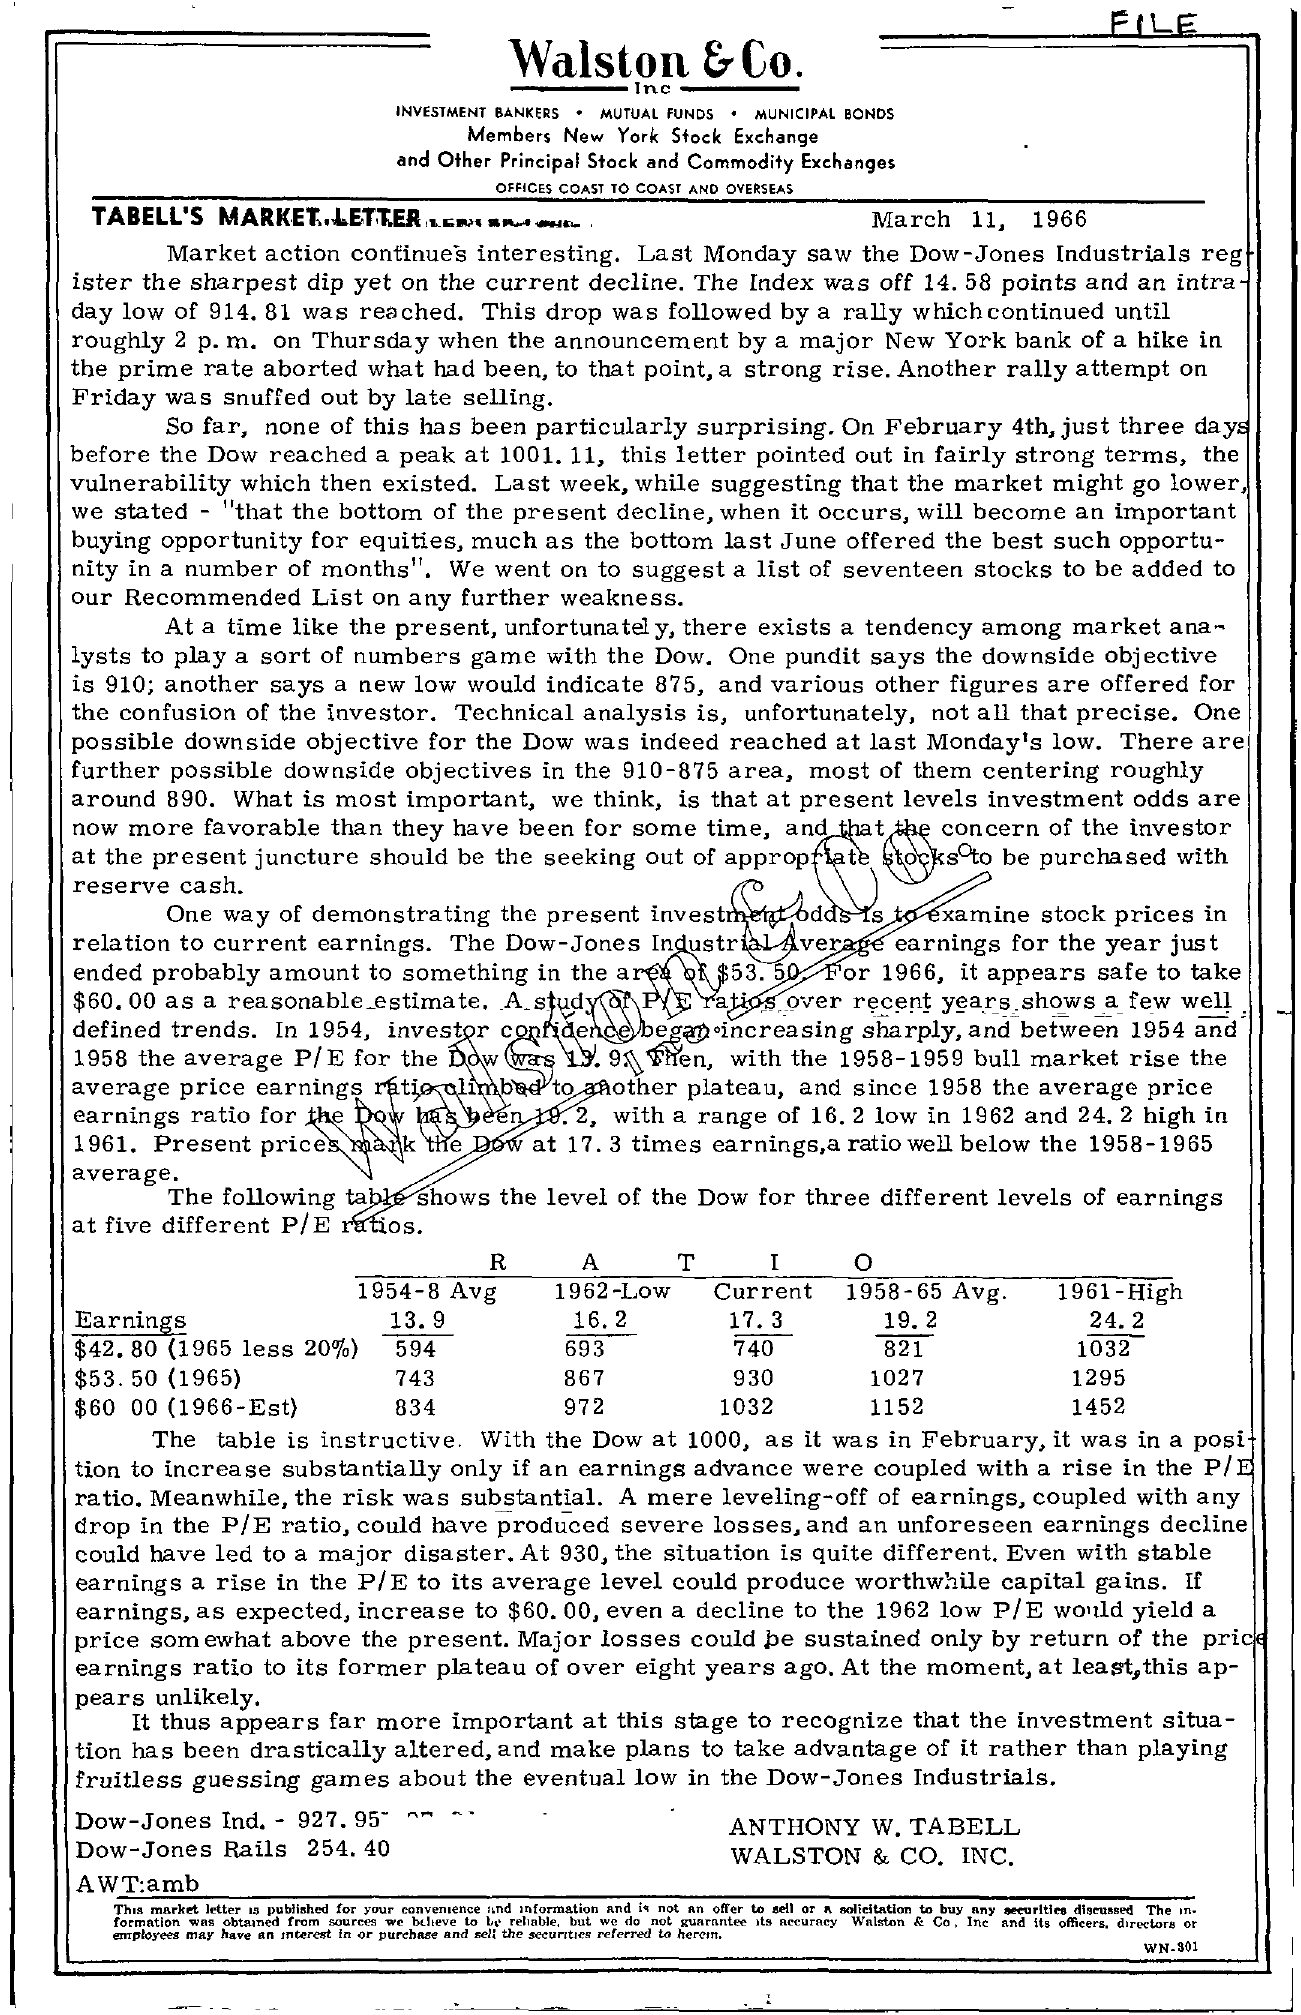 Tabell's Market Letter - March 11, 1966